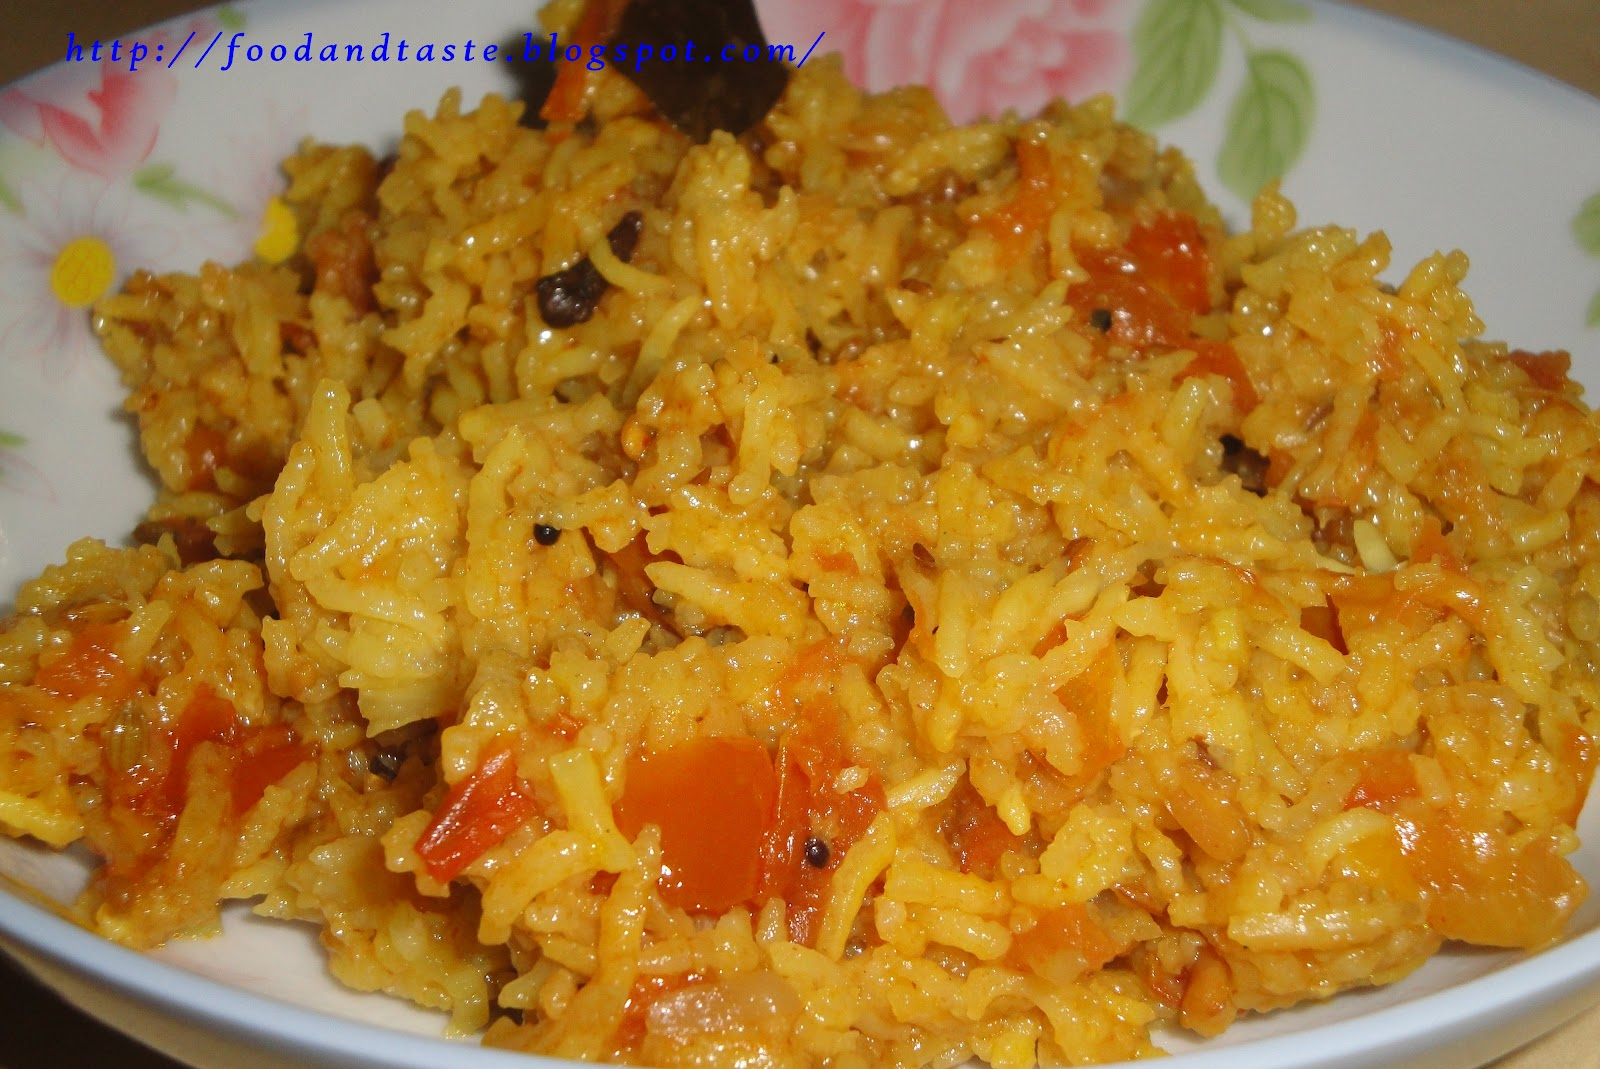 Food and taste thakkali sadam tomato rice south indian recipe thakkali sadam tomato rice south indian recipe forumfinder Gallery